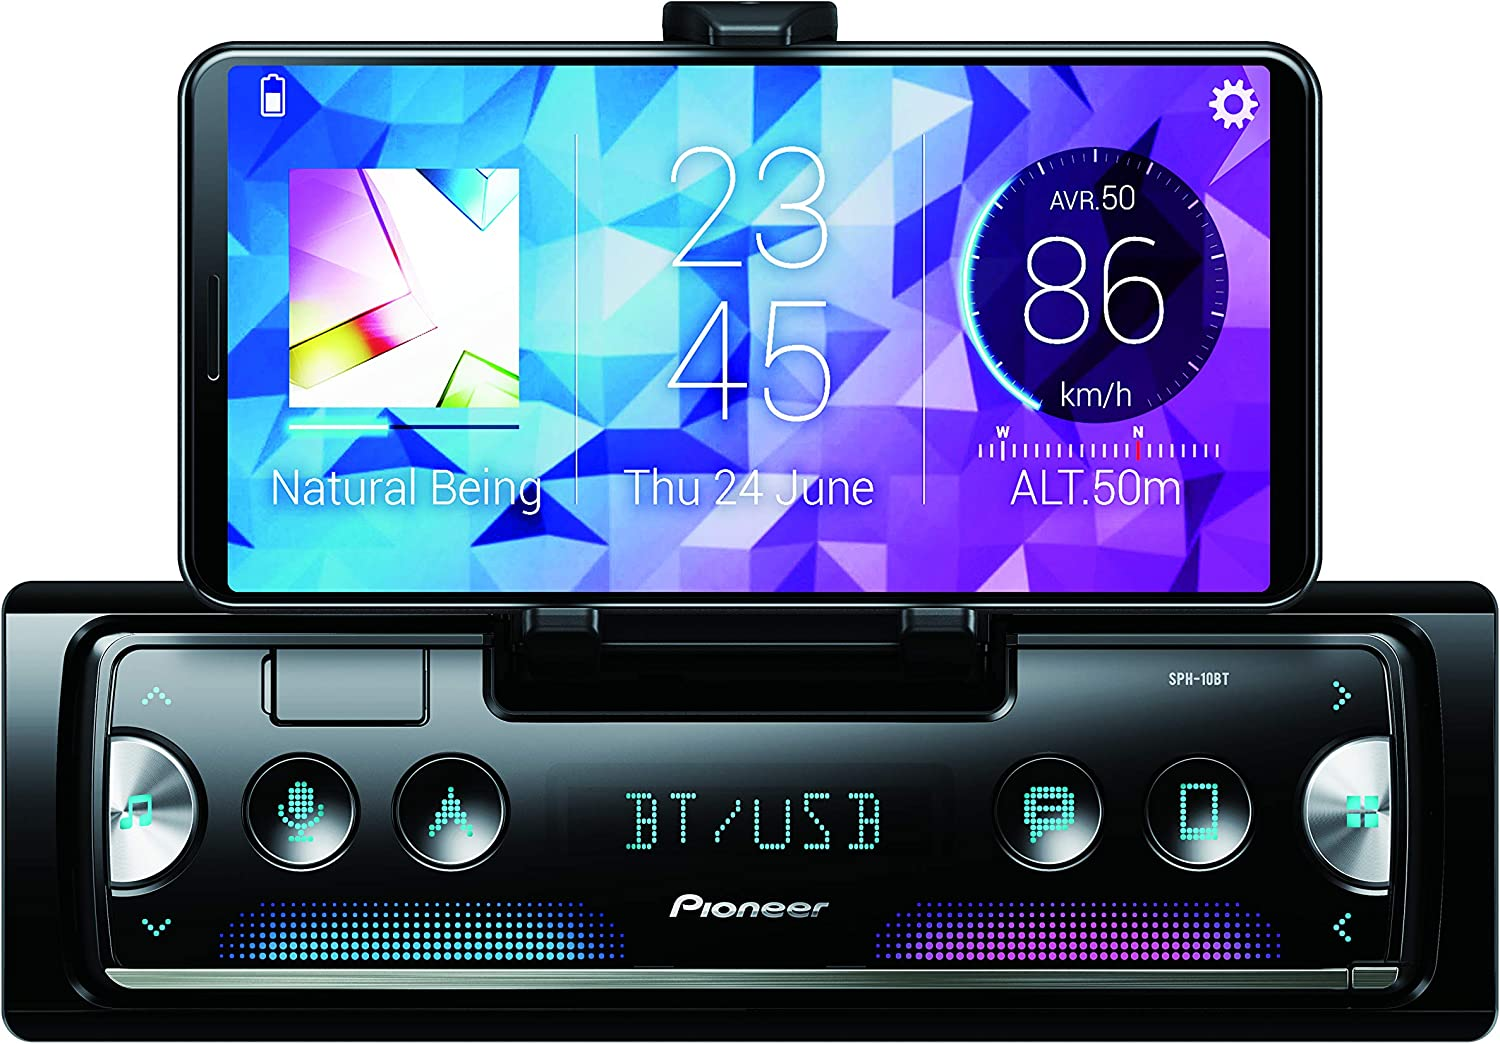 Pioneer SPH-10BT Radio MP3, Negro/Plata